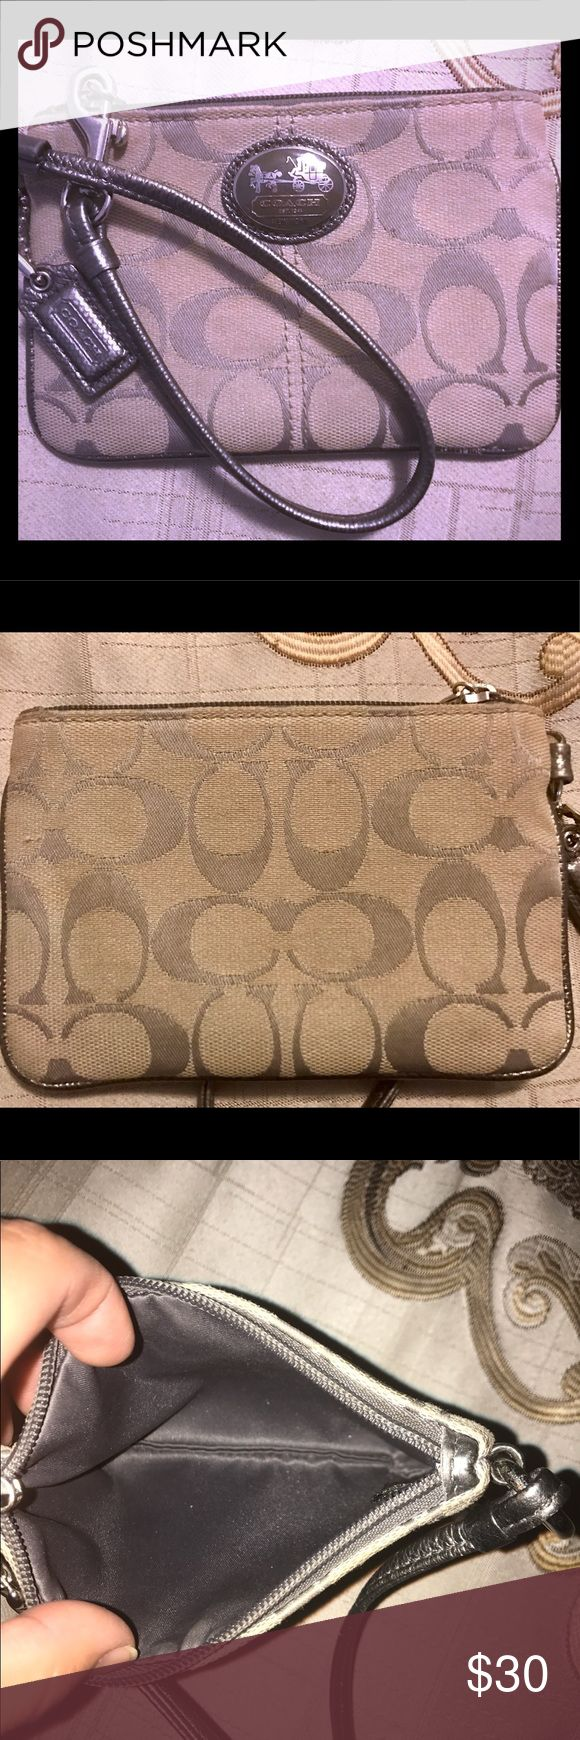 Coach Wristlet  Coach Wristlet in well condition. Shows only slight wear.  I retired this wristlet so now it is time for you to love and enjoy! Amazing price on this wristlet! Never tried to spot clean. Coach Bags Clutches & Wristlets